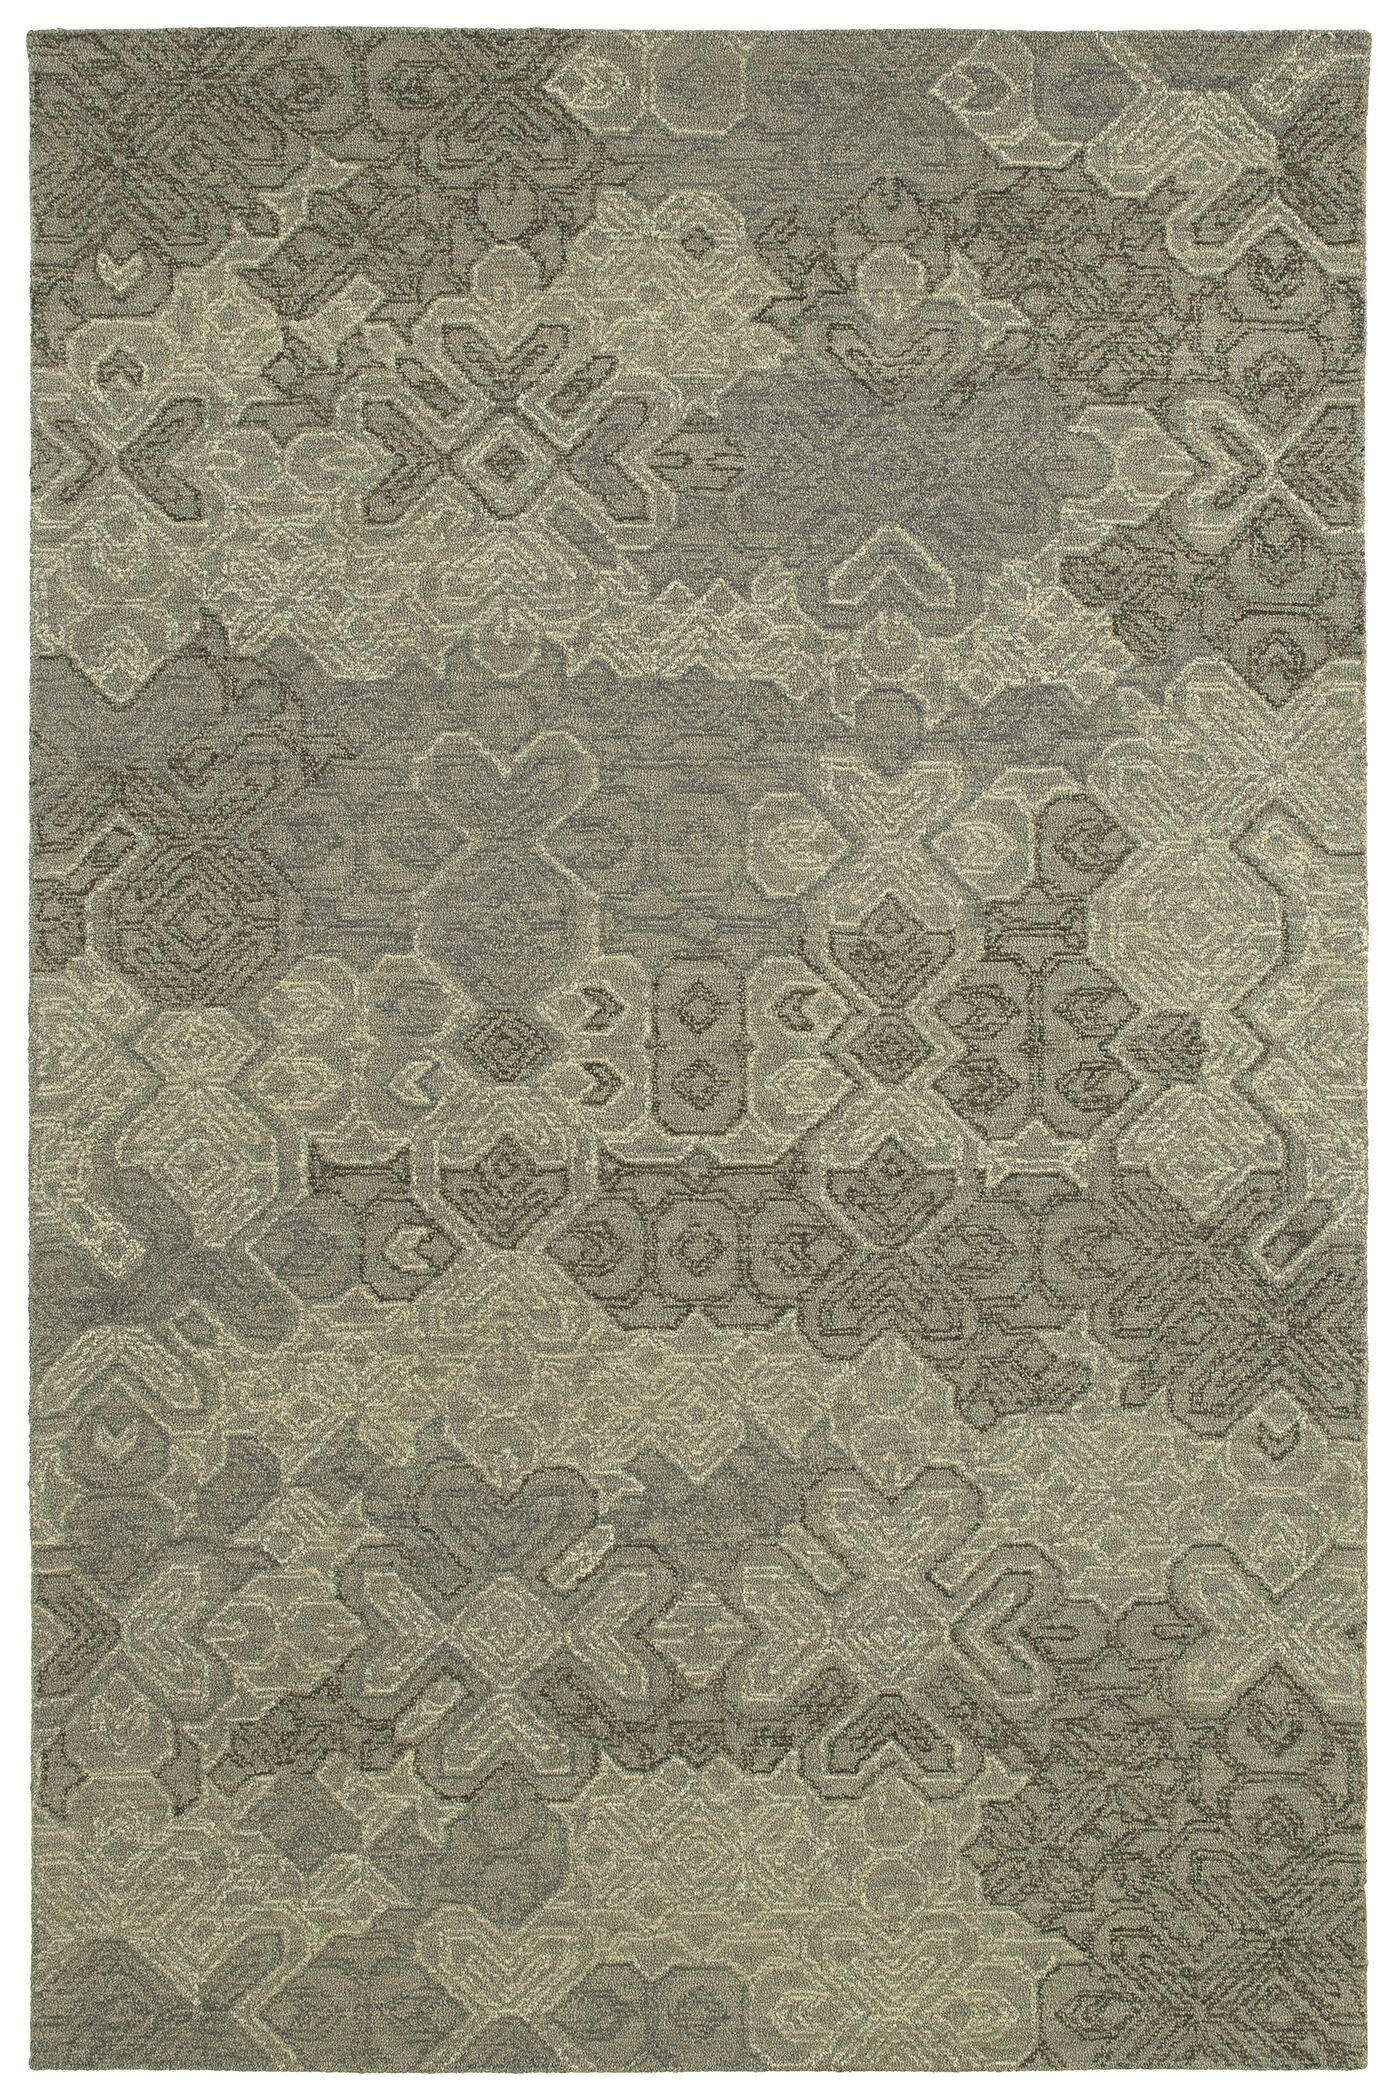 Stockman Hand-Tufted Wool Taupe/Gray Area Rug Rug Size: Rectangle 8' x 10'